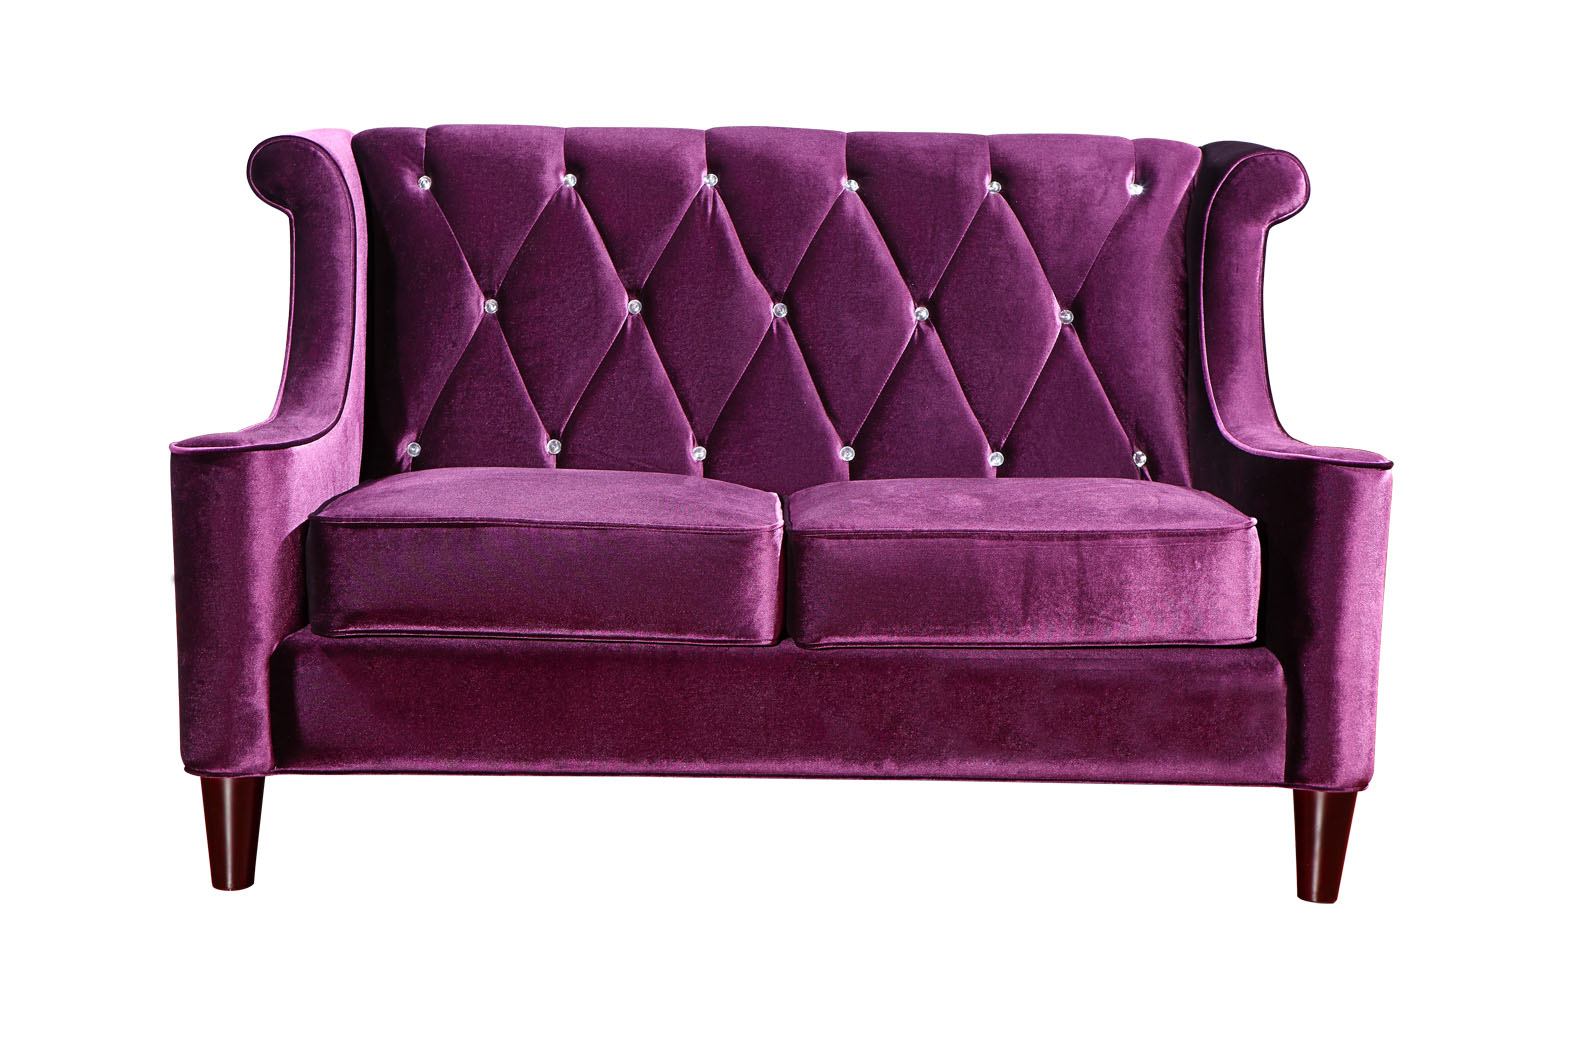 Barrister Eggplant Tufted Velvet with Rhinestones Las  : virtuemartproductlc8442purple front from www.vegashomefurniture.com size 1575 x 1050 jpeg 218kB